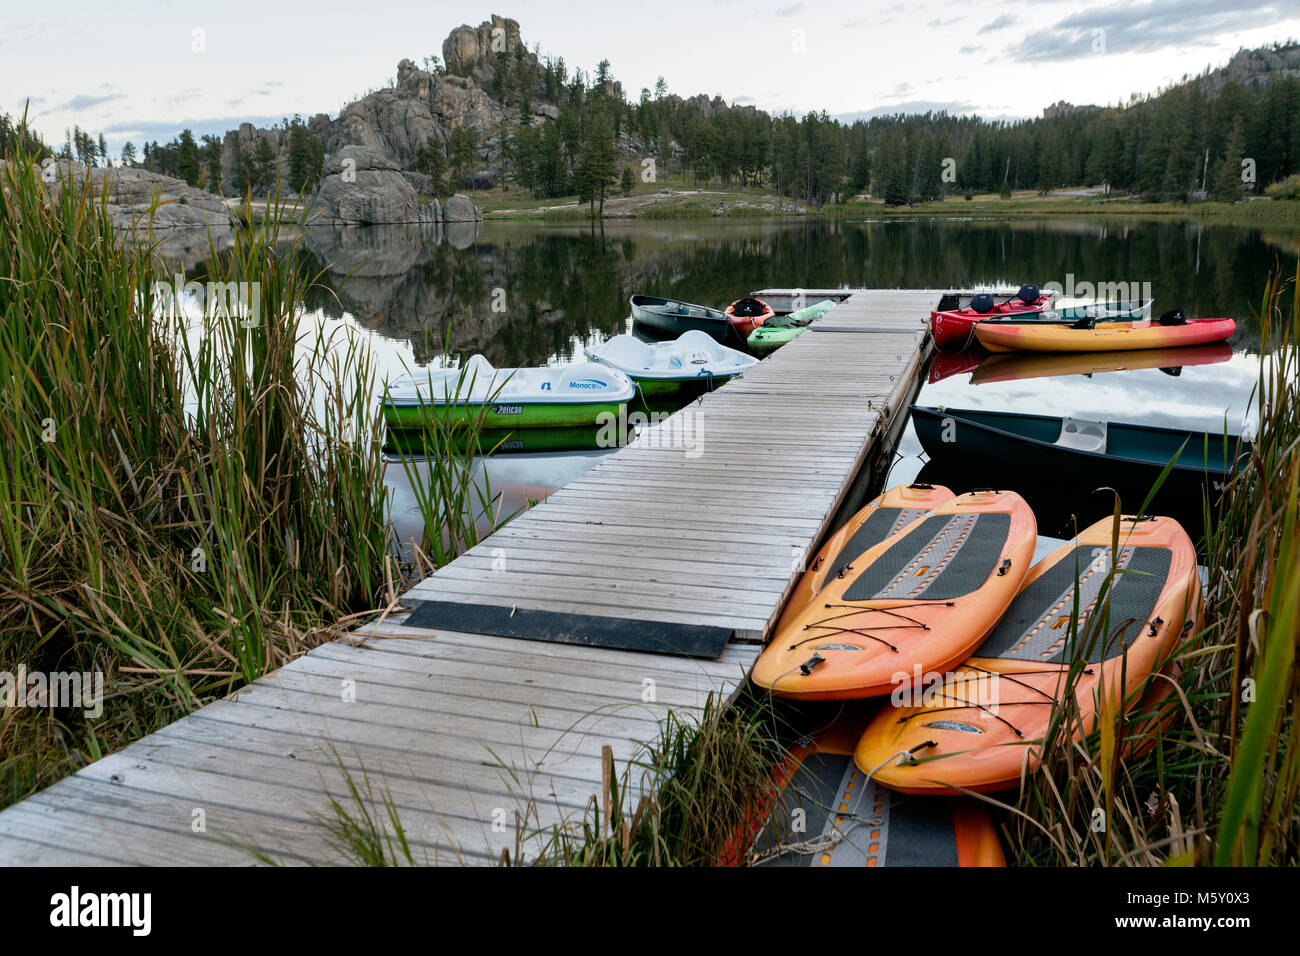 SD00061-00...SOUTH DAKOTA - Sunrise at Sylvan Lake in Custer State Park. - Stock Image